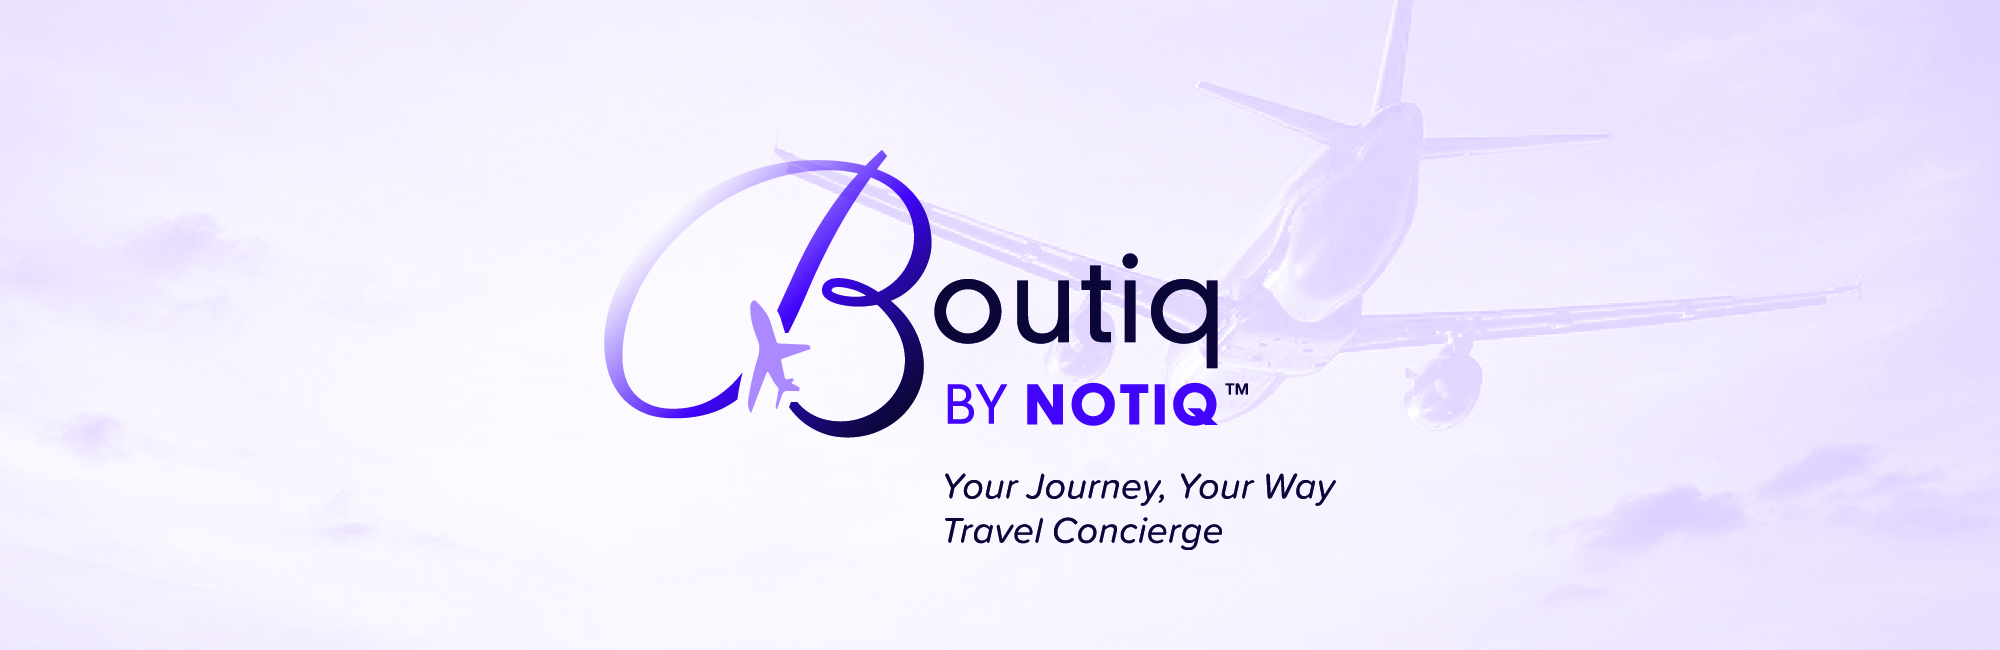 Boutiq by Notiq™ - Your Travel, Your Way Concierge Service